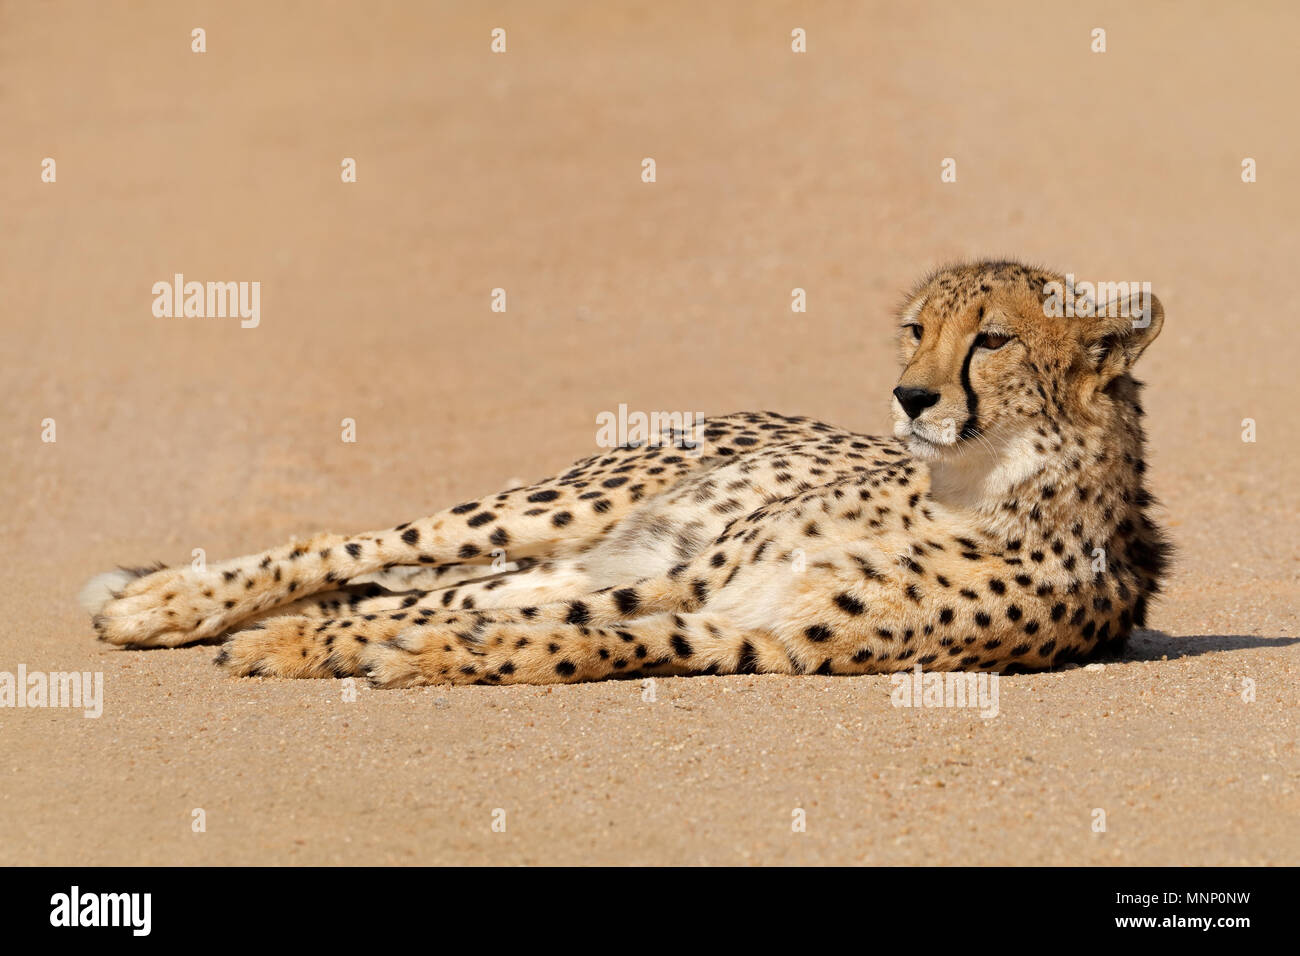 A relaxed cheetah (Acinonyx jubatus) lying down, South Africa - Stock Image